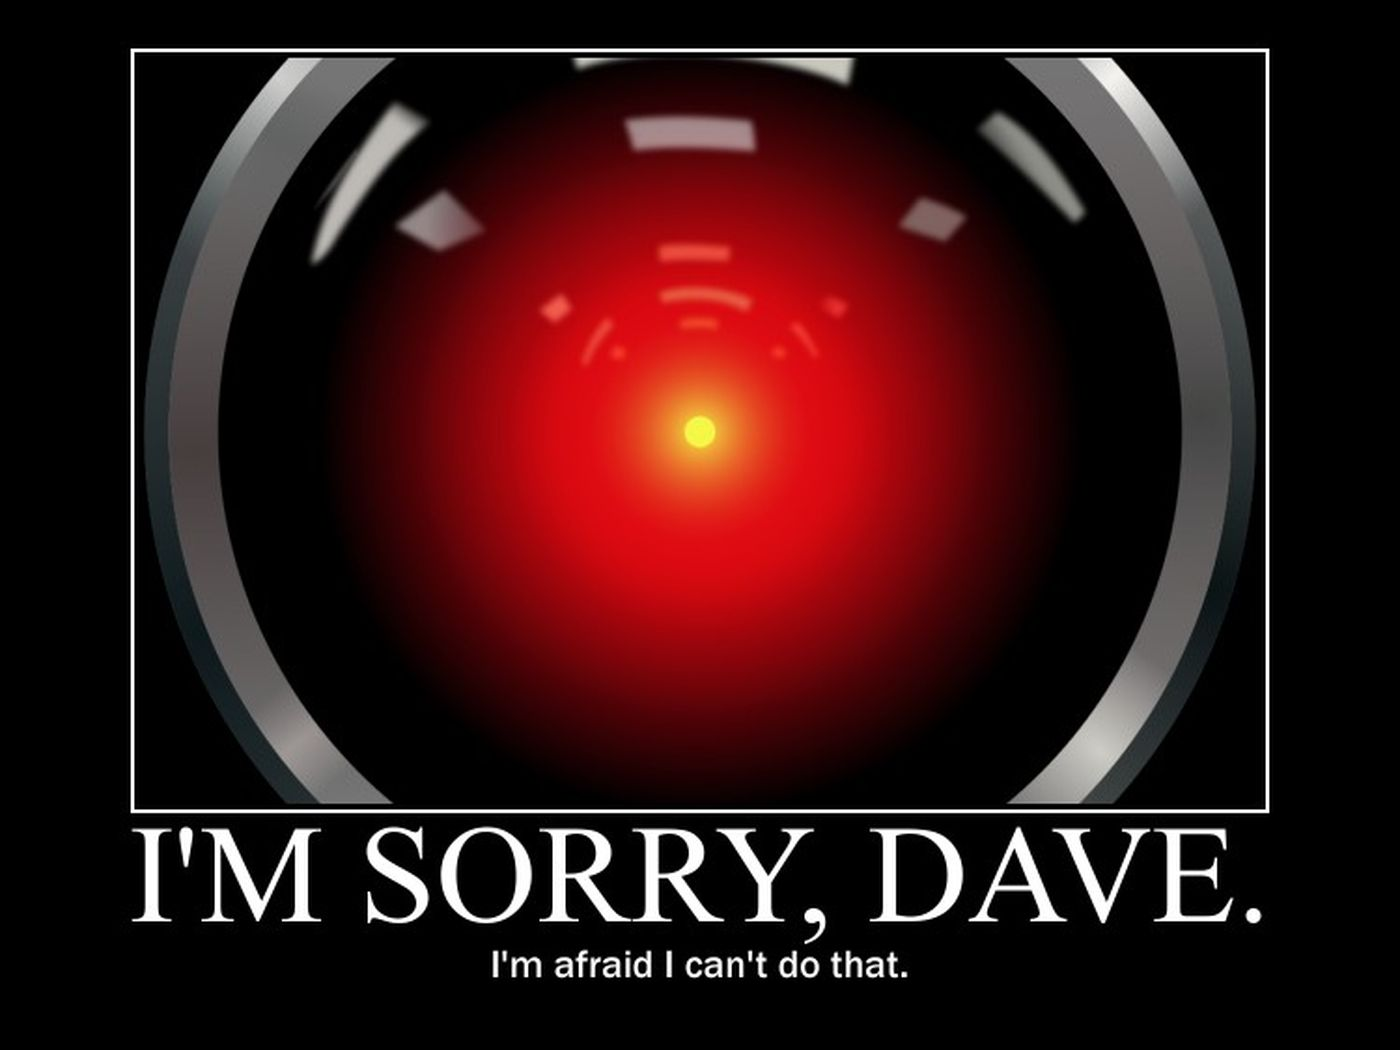 I am sorry Dave i'm afraid i can't do that